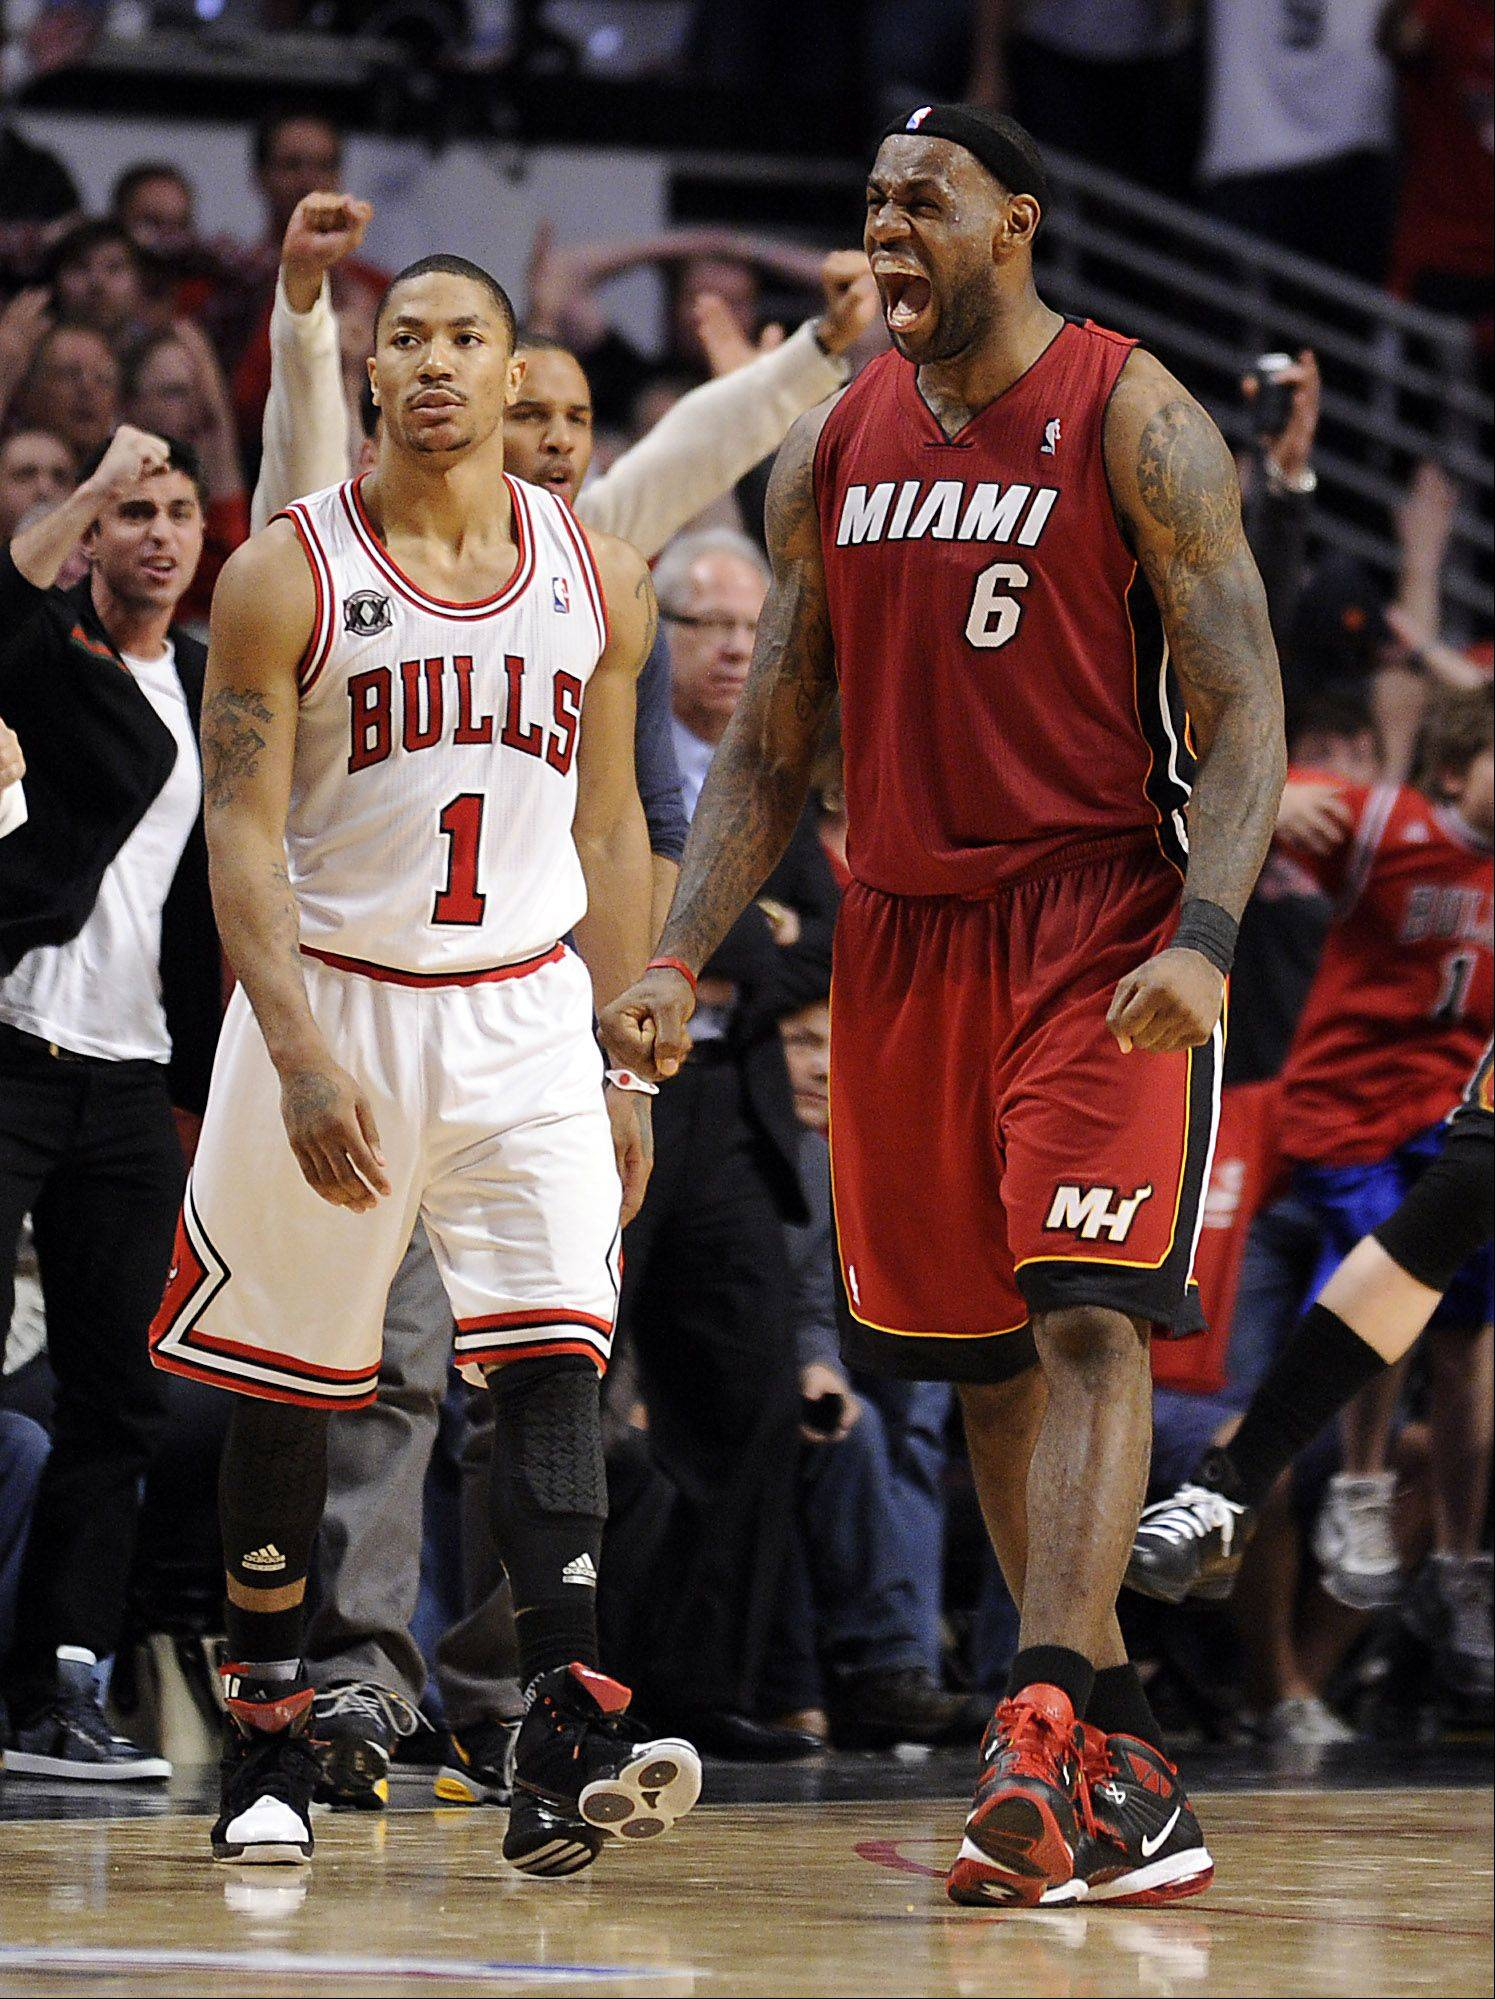 While Derrick Rose didn't play last season, he still finished No. 2 in NBA jersey sales worldwide with LeBron James at No. 1. Rose was the No. 1 seller, however, in Latin American, China and Europe.